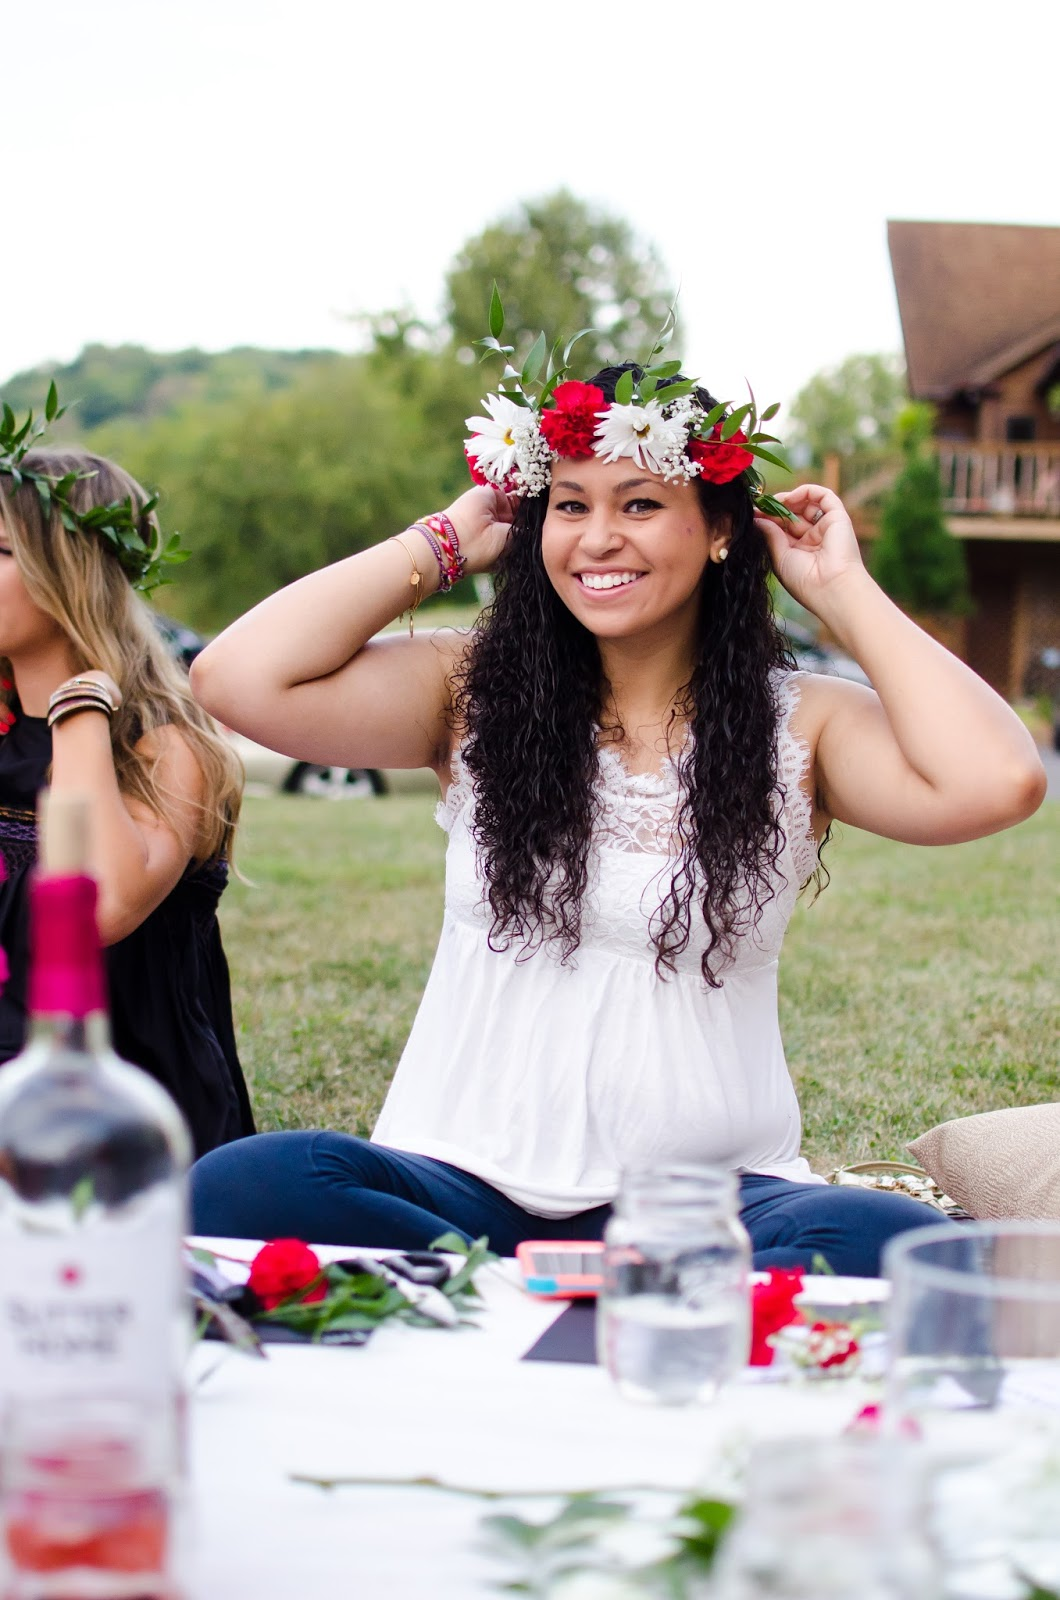 Flower Crowns Food Gathering The Wild Revival